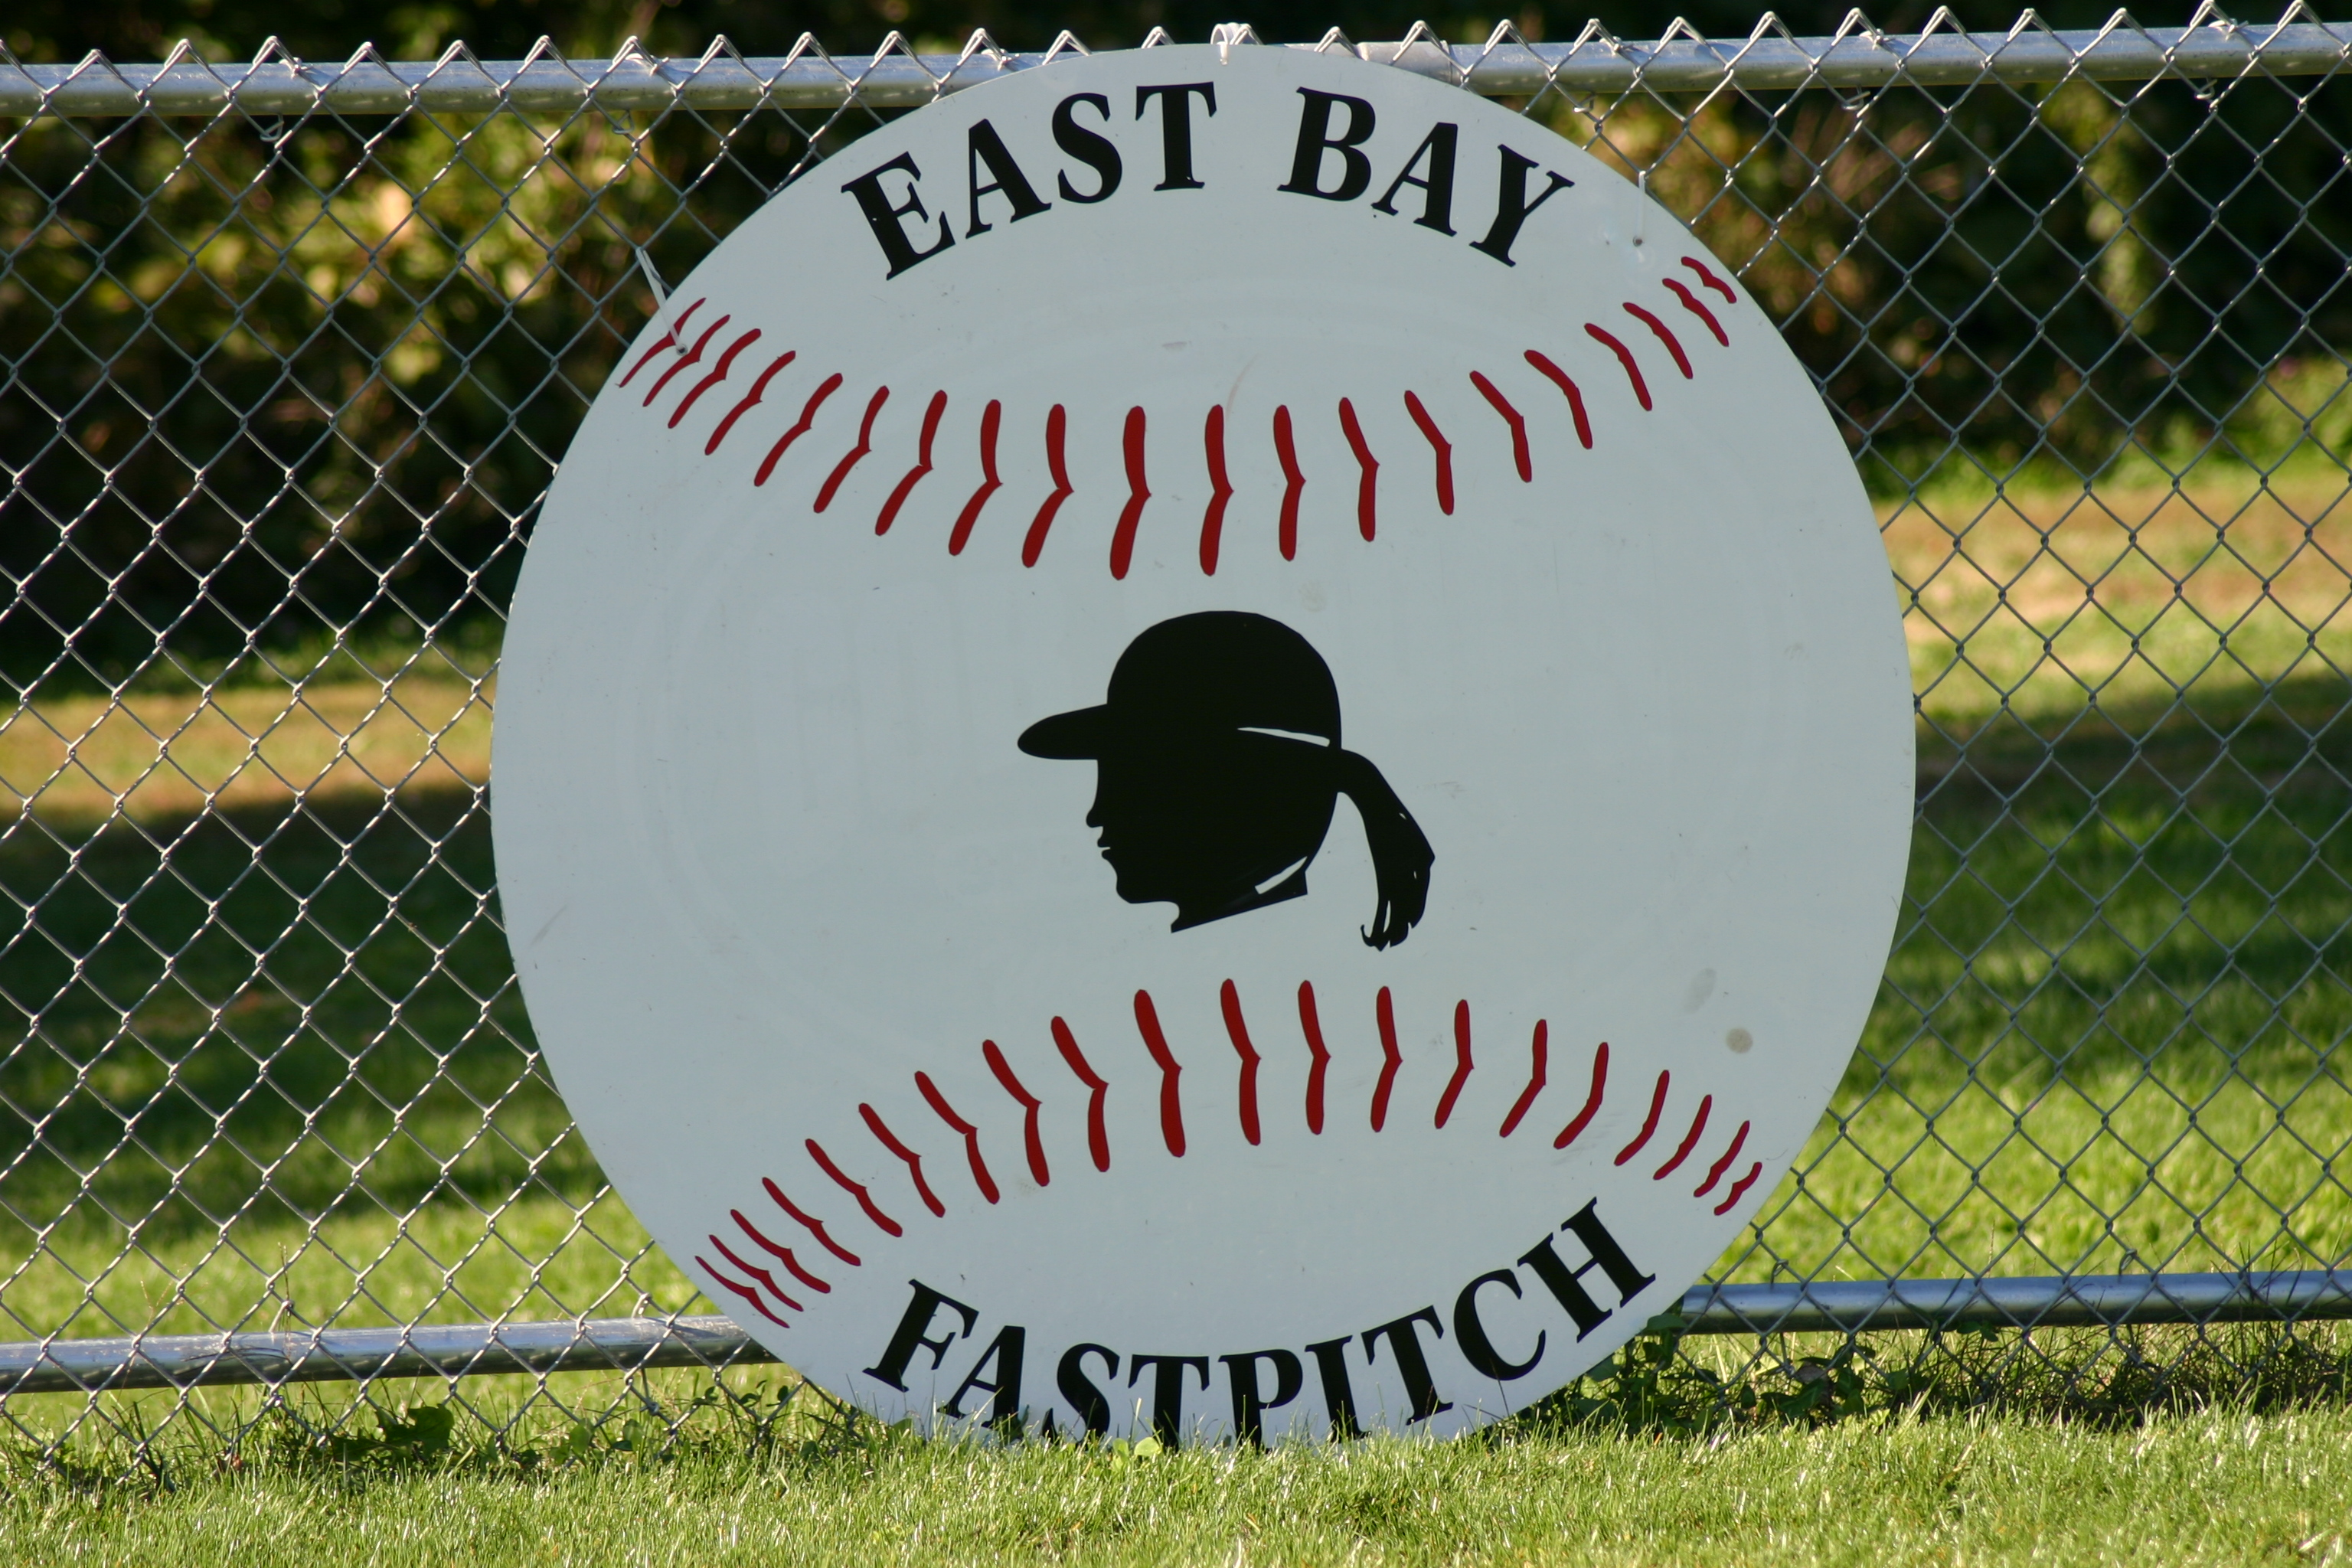 East Bay Fast Pitch